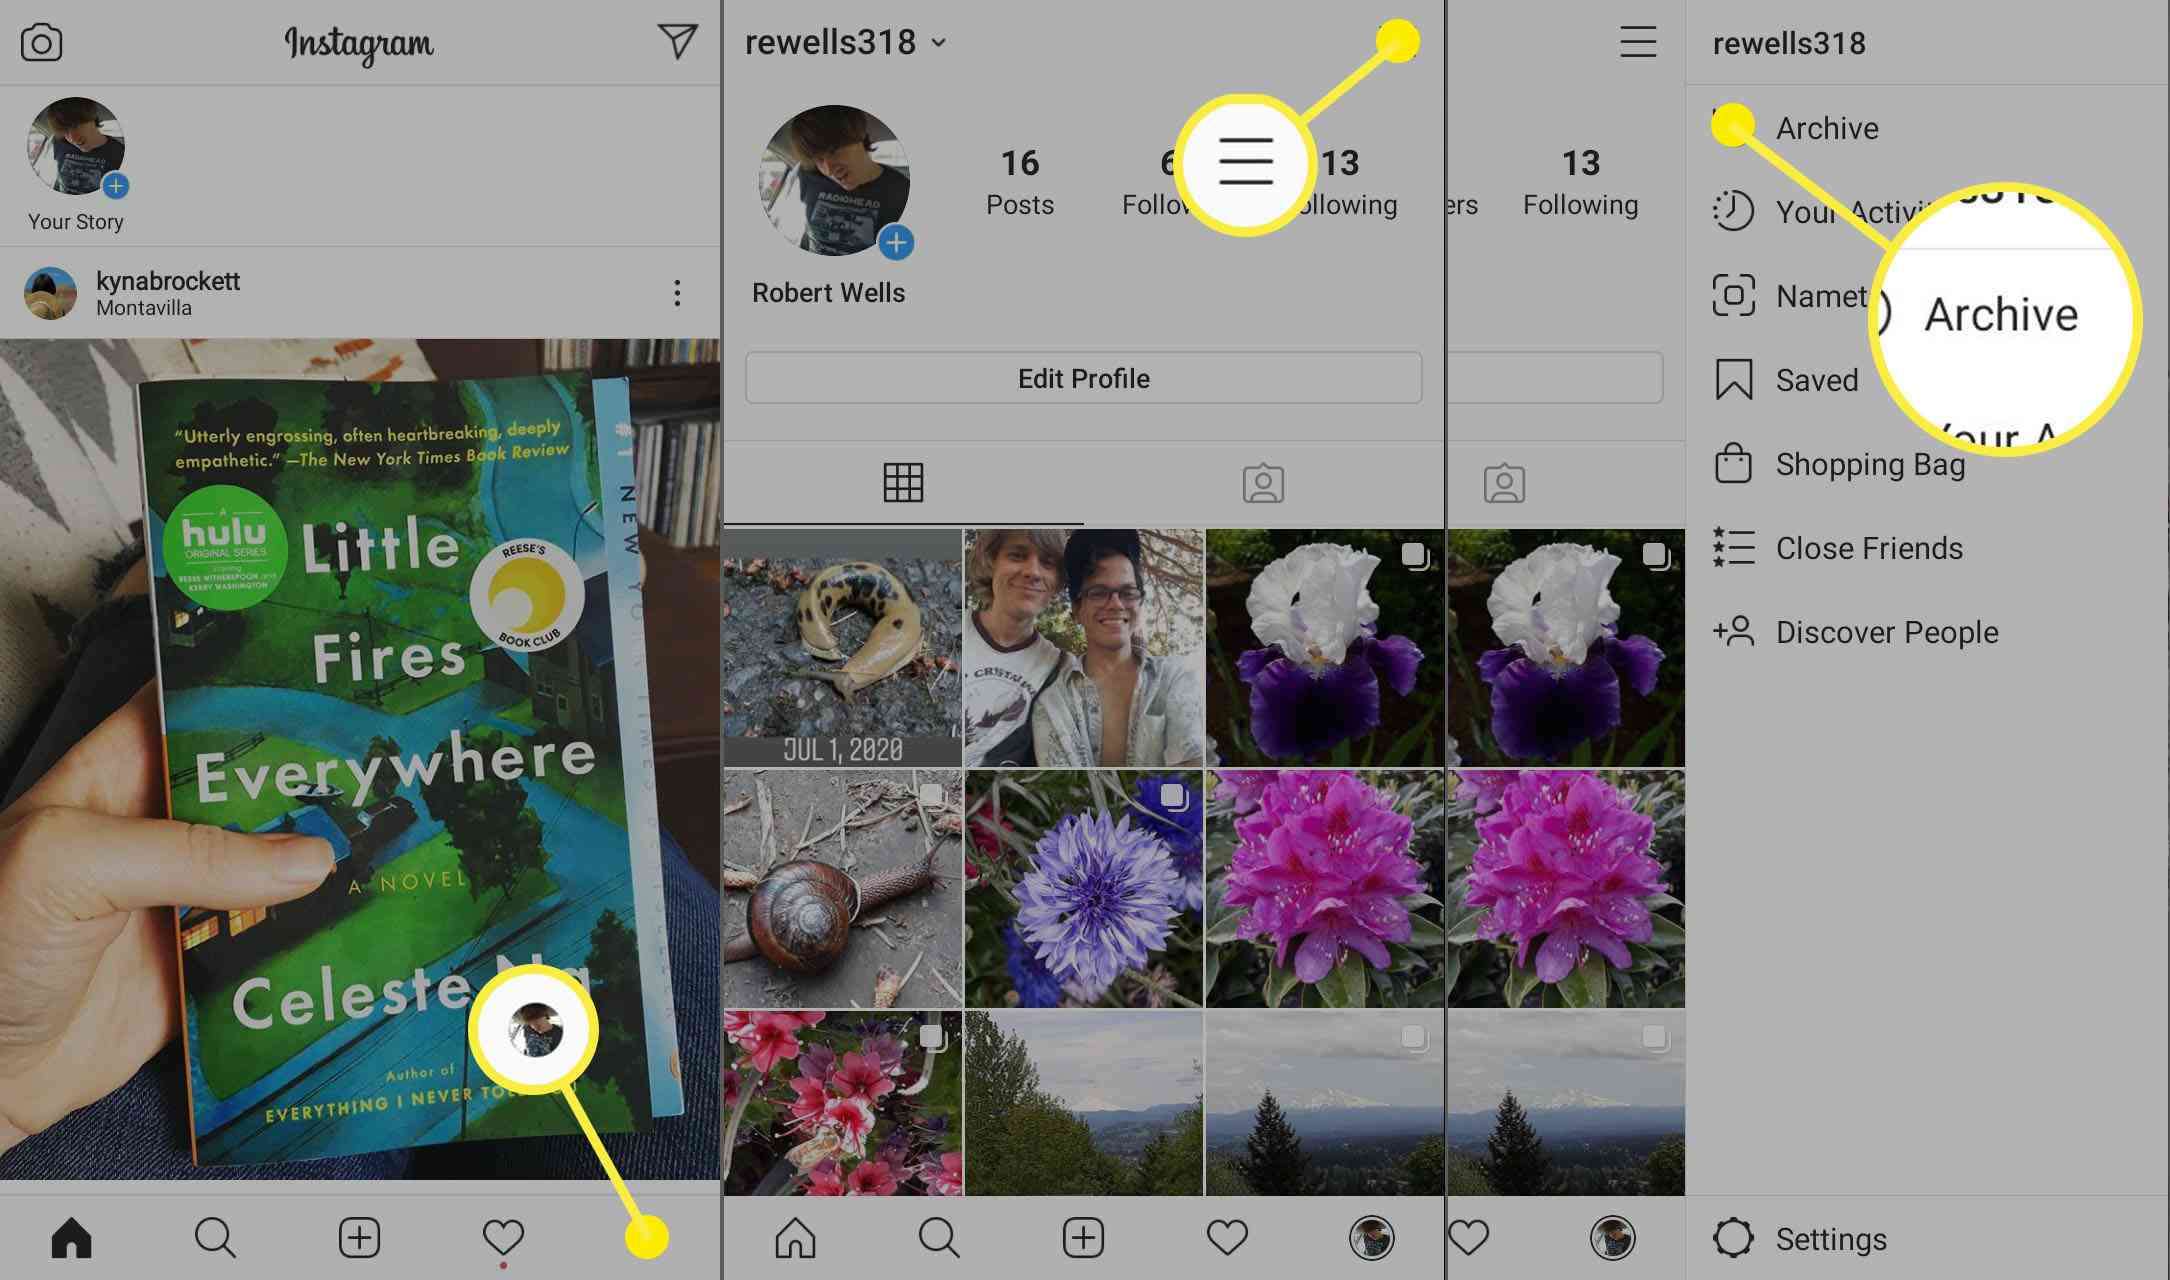 The steps to take to access your Instagram story archive.